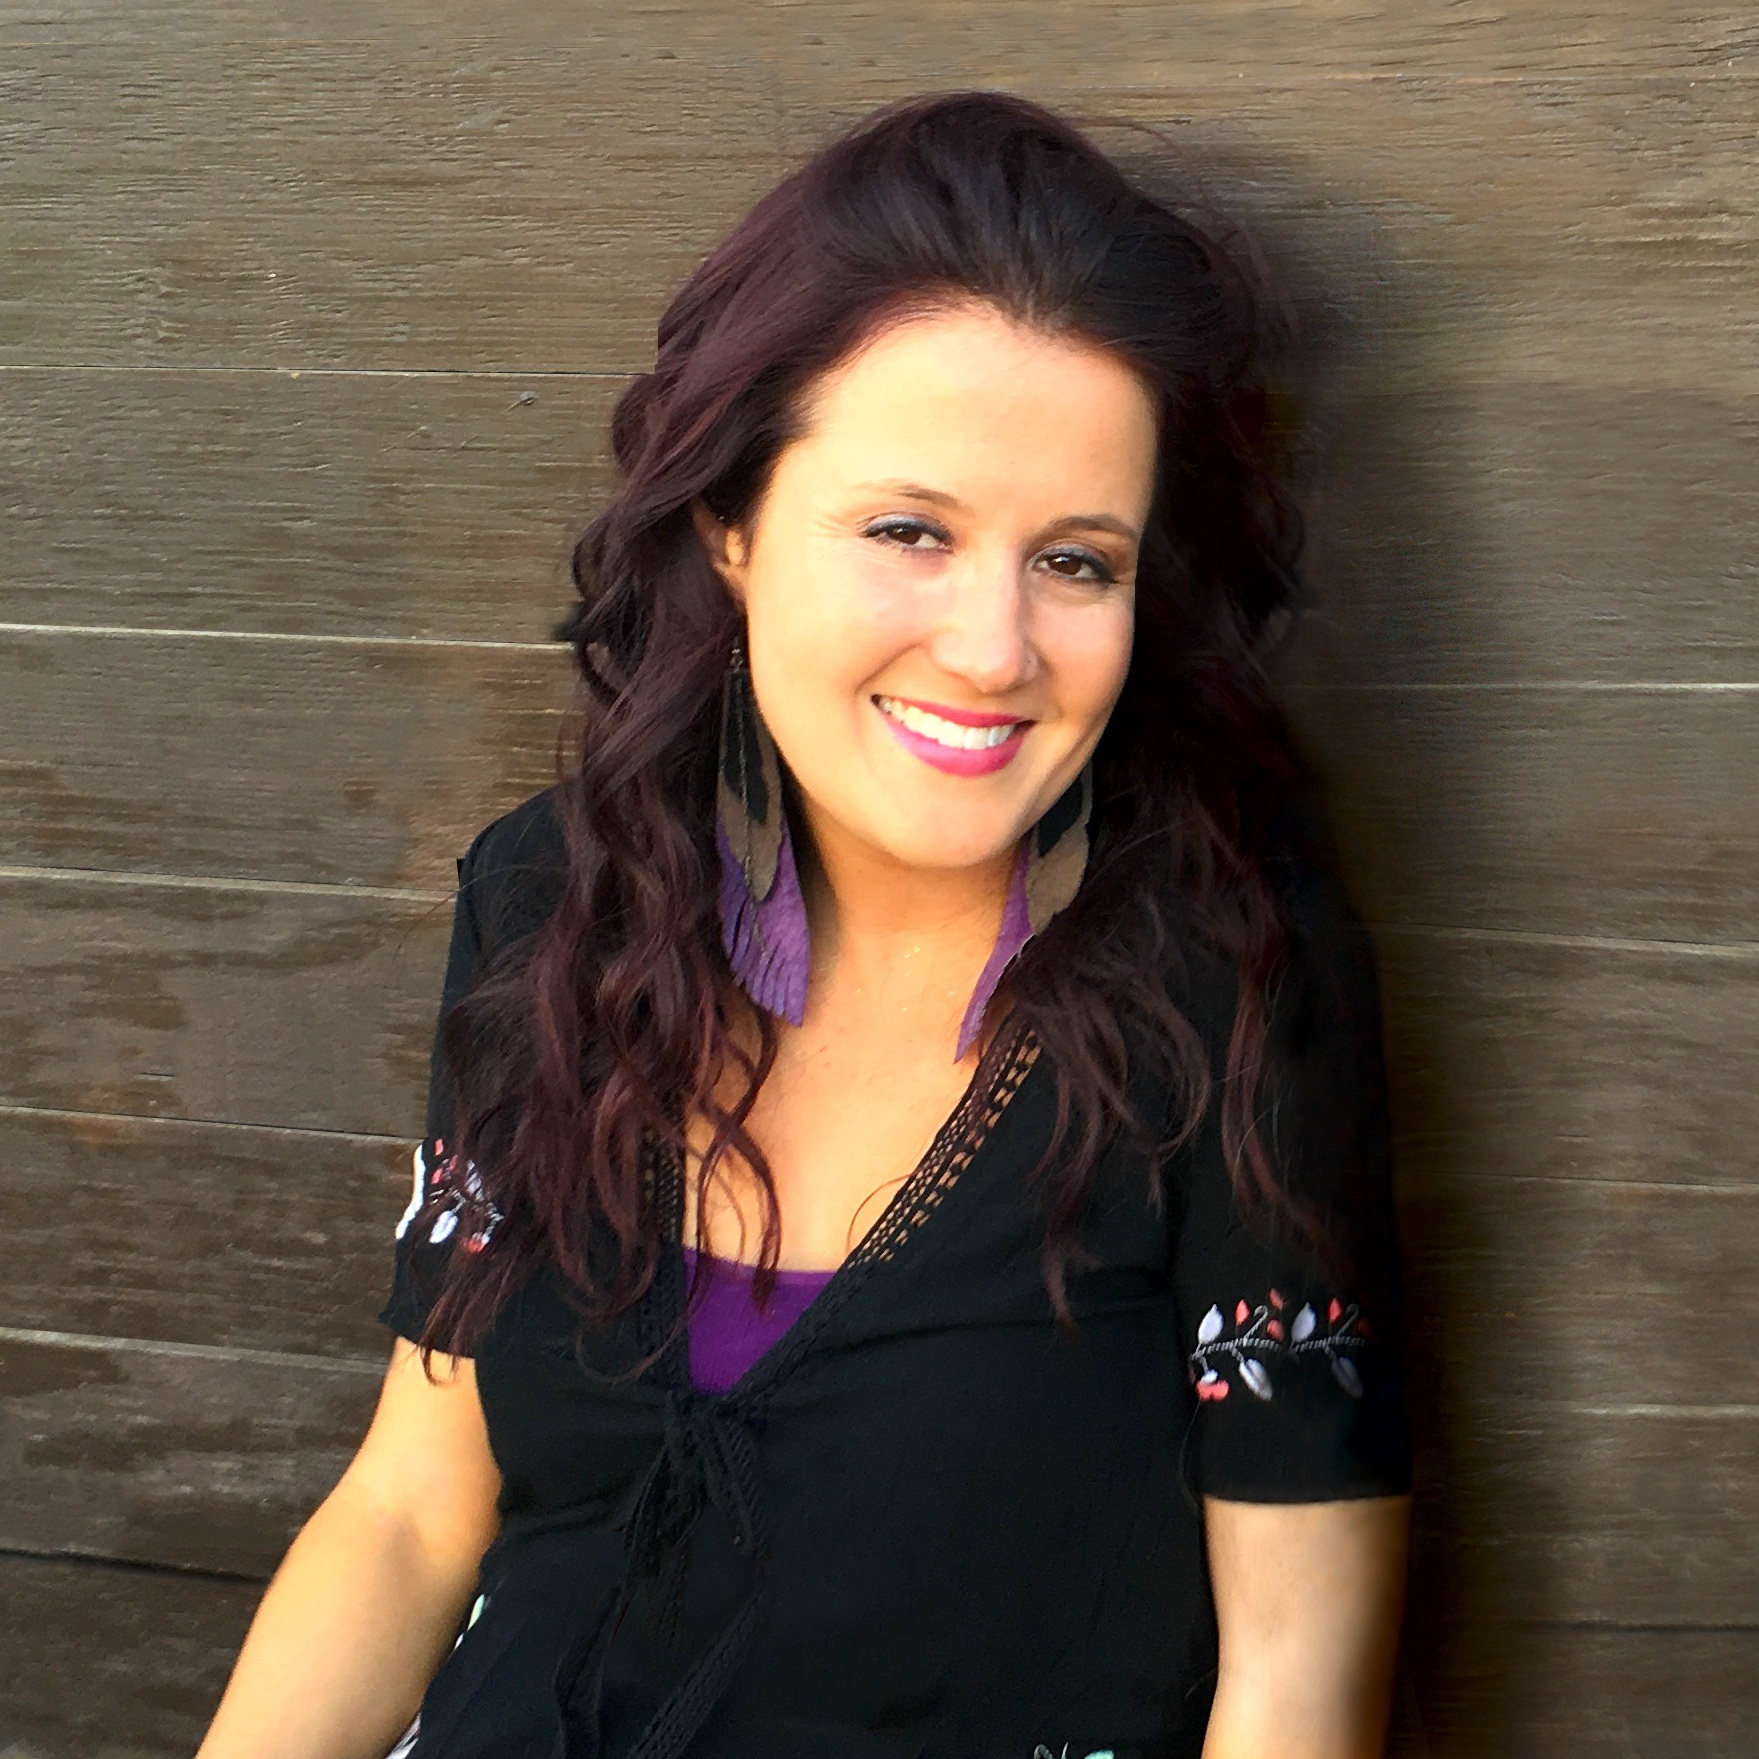 Amirose Eisenbach sits against a wooden wall, smiling at the camera. She has long, wavy dark hair and is wearing a black v-neck top with a purple shirt underneath.